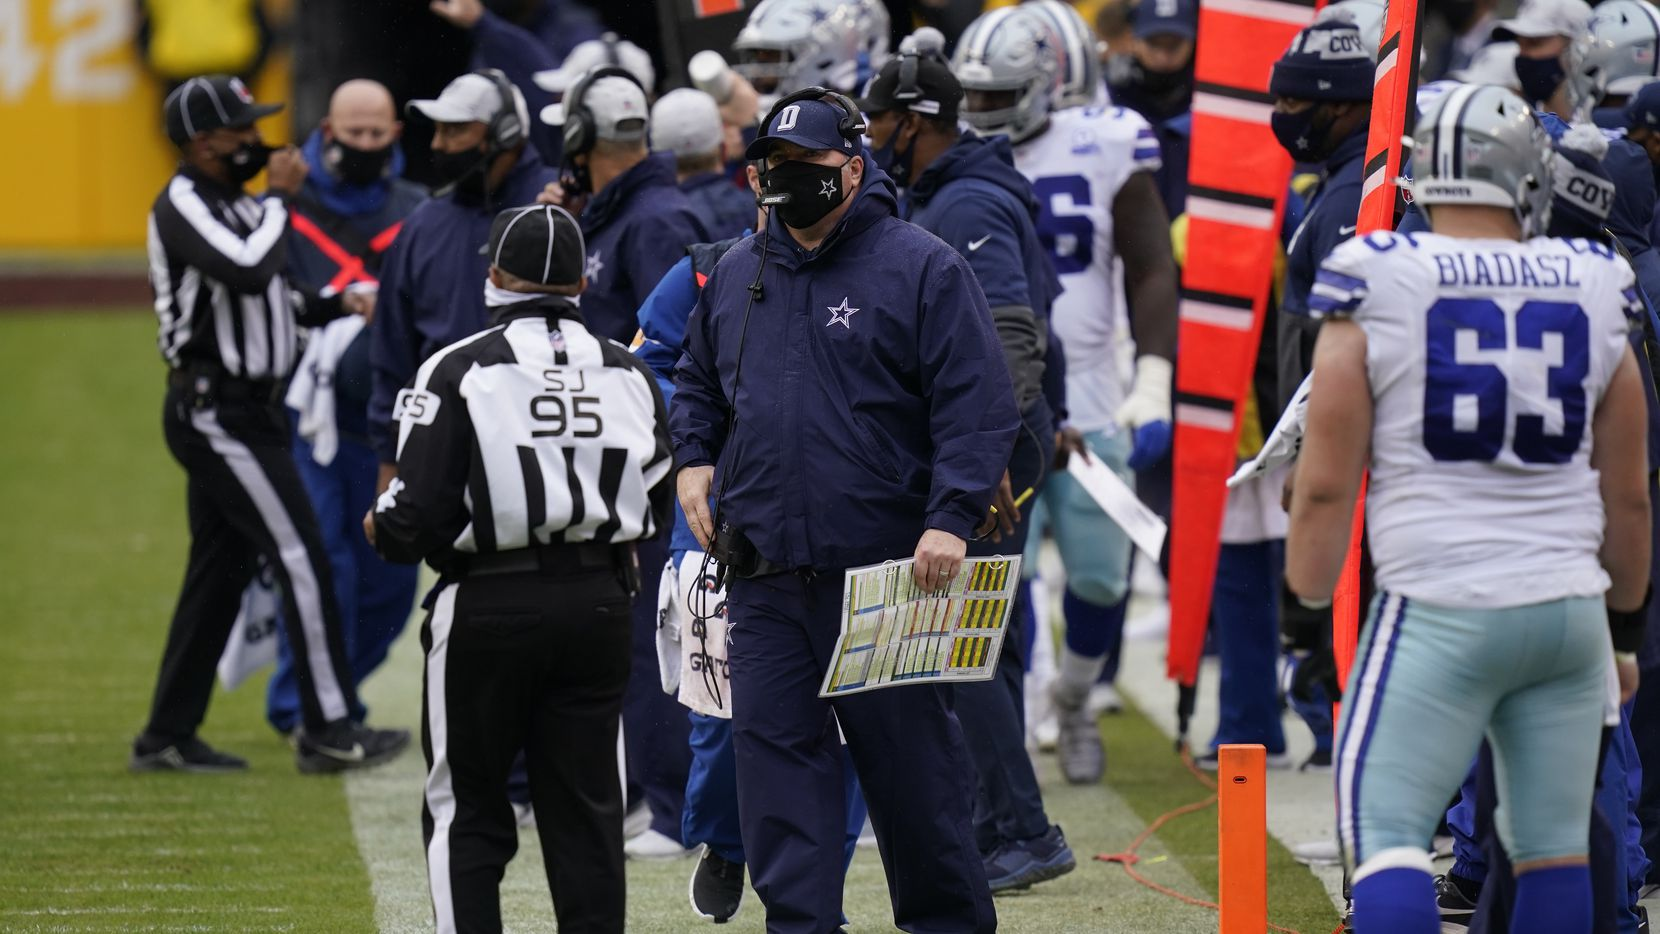 Dallas Cowboys head coach Mike McCarthy on the sidelines in the first half of an NFL football game against Washington Football Team, Sunday, Oct. 25, 2020, in Landover, Md.